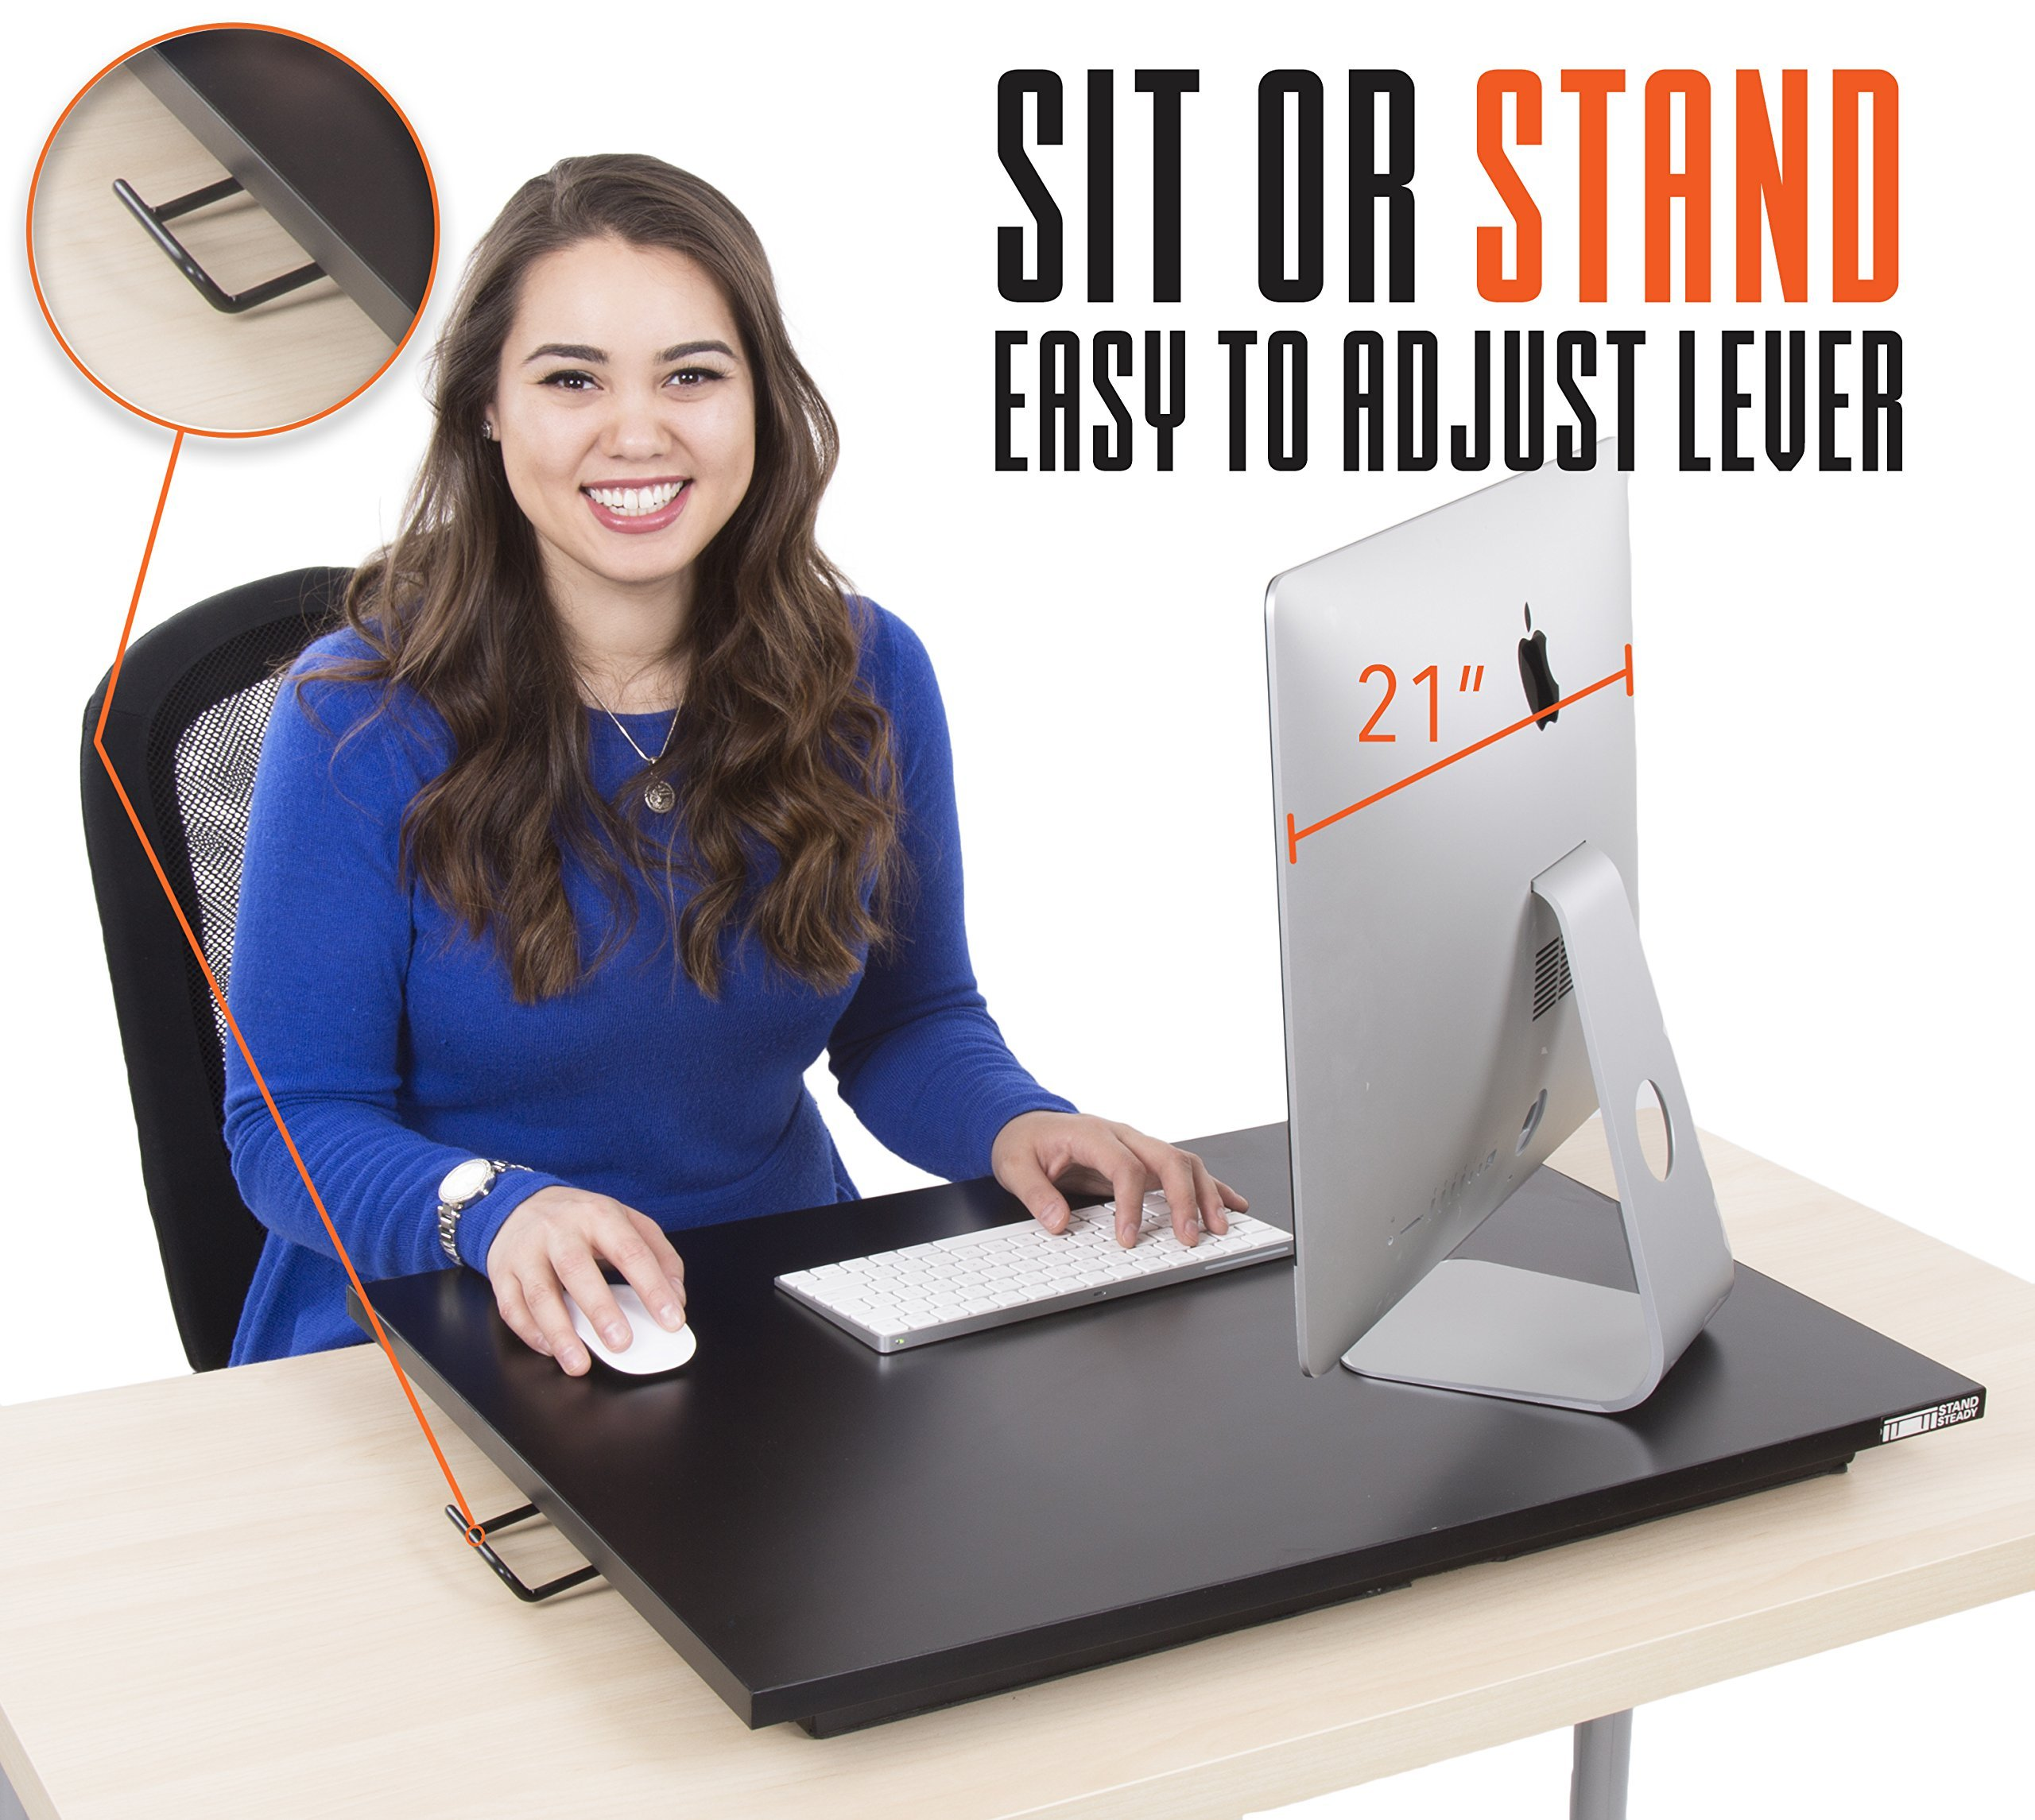 Standing Desk - X-Elite Pro Height Adjustable Desk Converter - Size 28in x 20in Instantly Convert any Desk to a Sit / Stand up Desk (Black) by Stand Steady (Image #2)